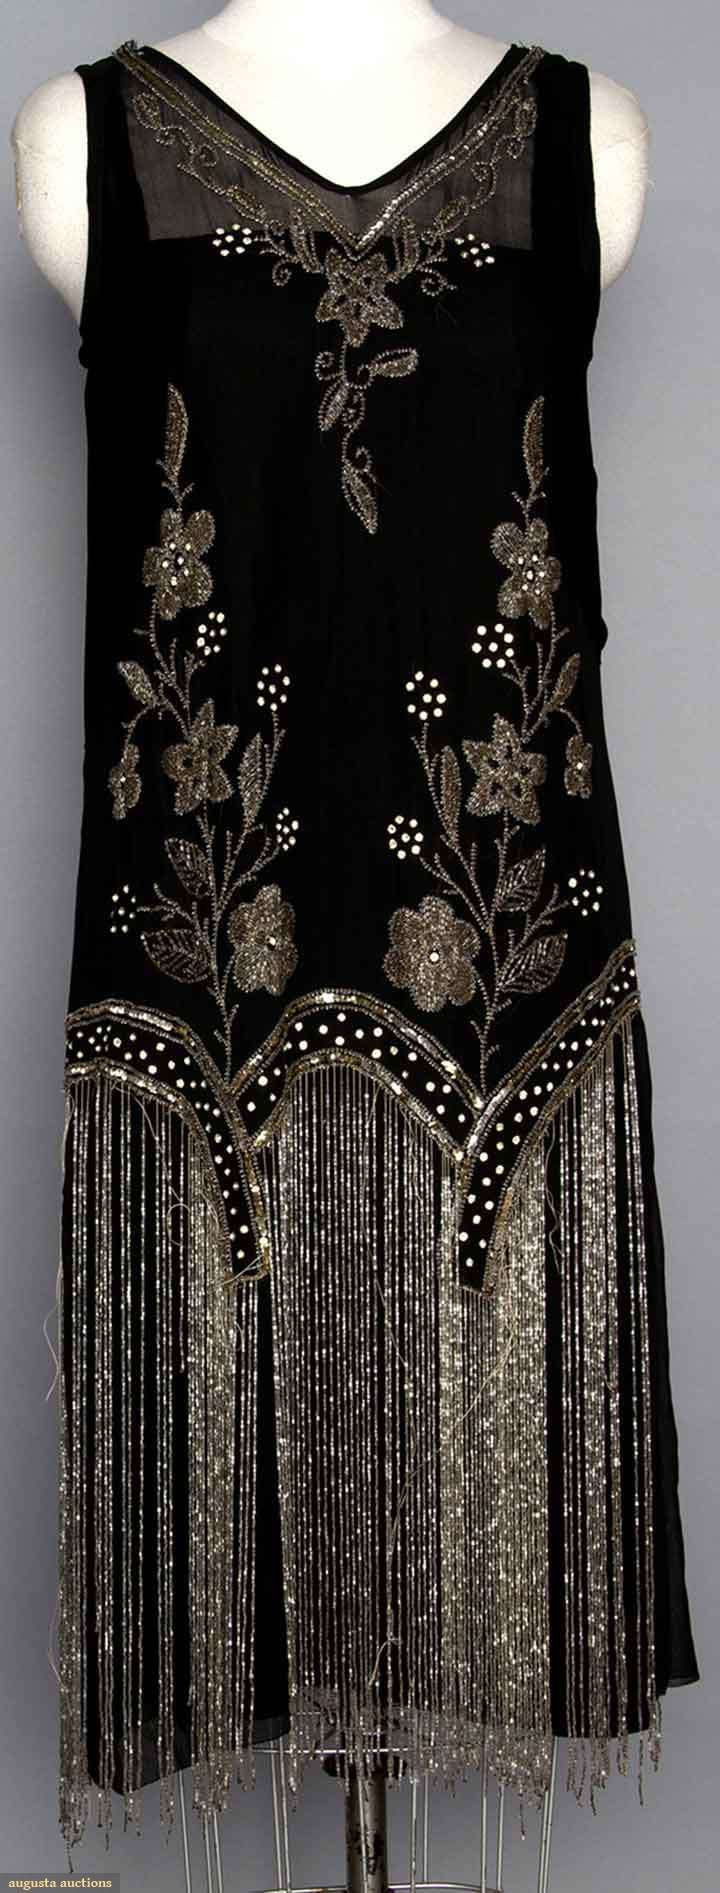 BEADED FLAPPER DRESS. Black silk w/ crystal beads & long beaded fringe. Front